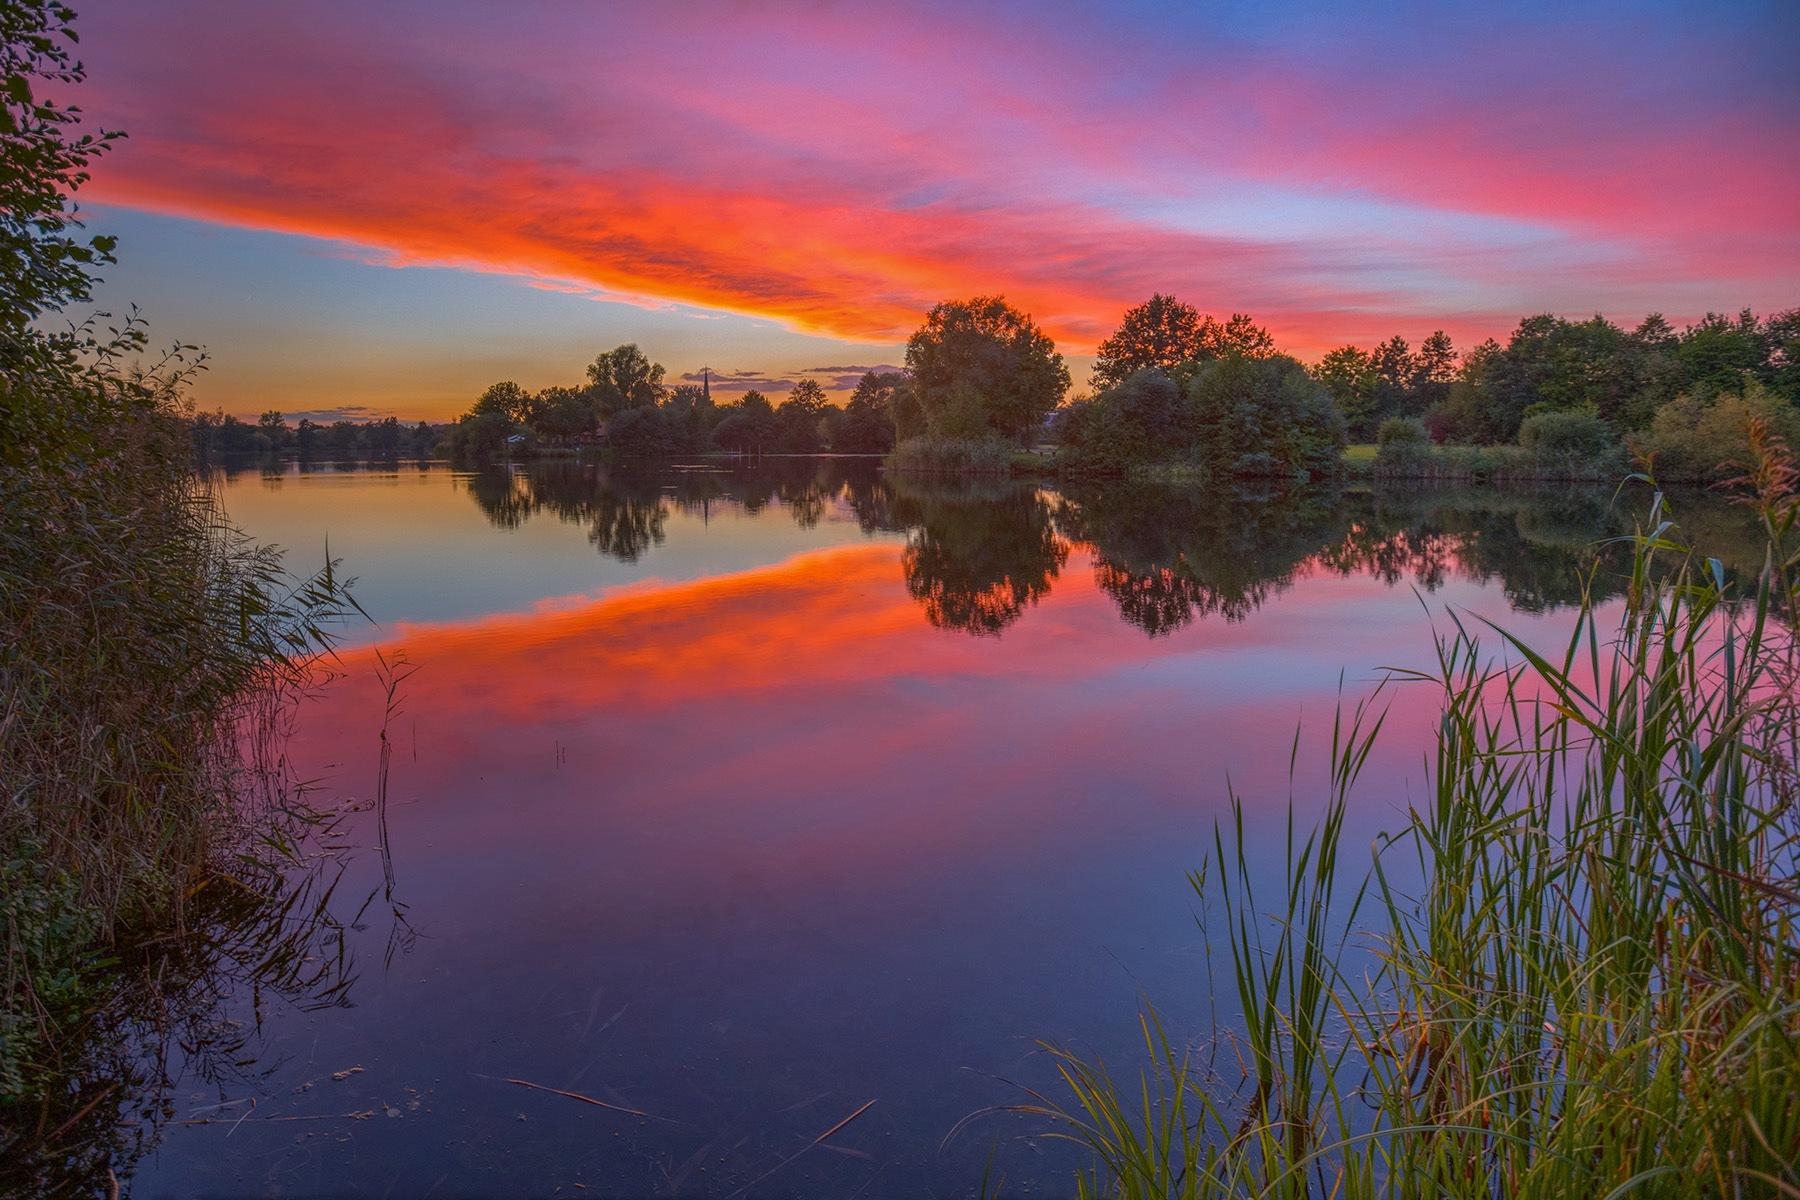 Today's sunset in Dannenberg by Maik Richter Photography